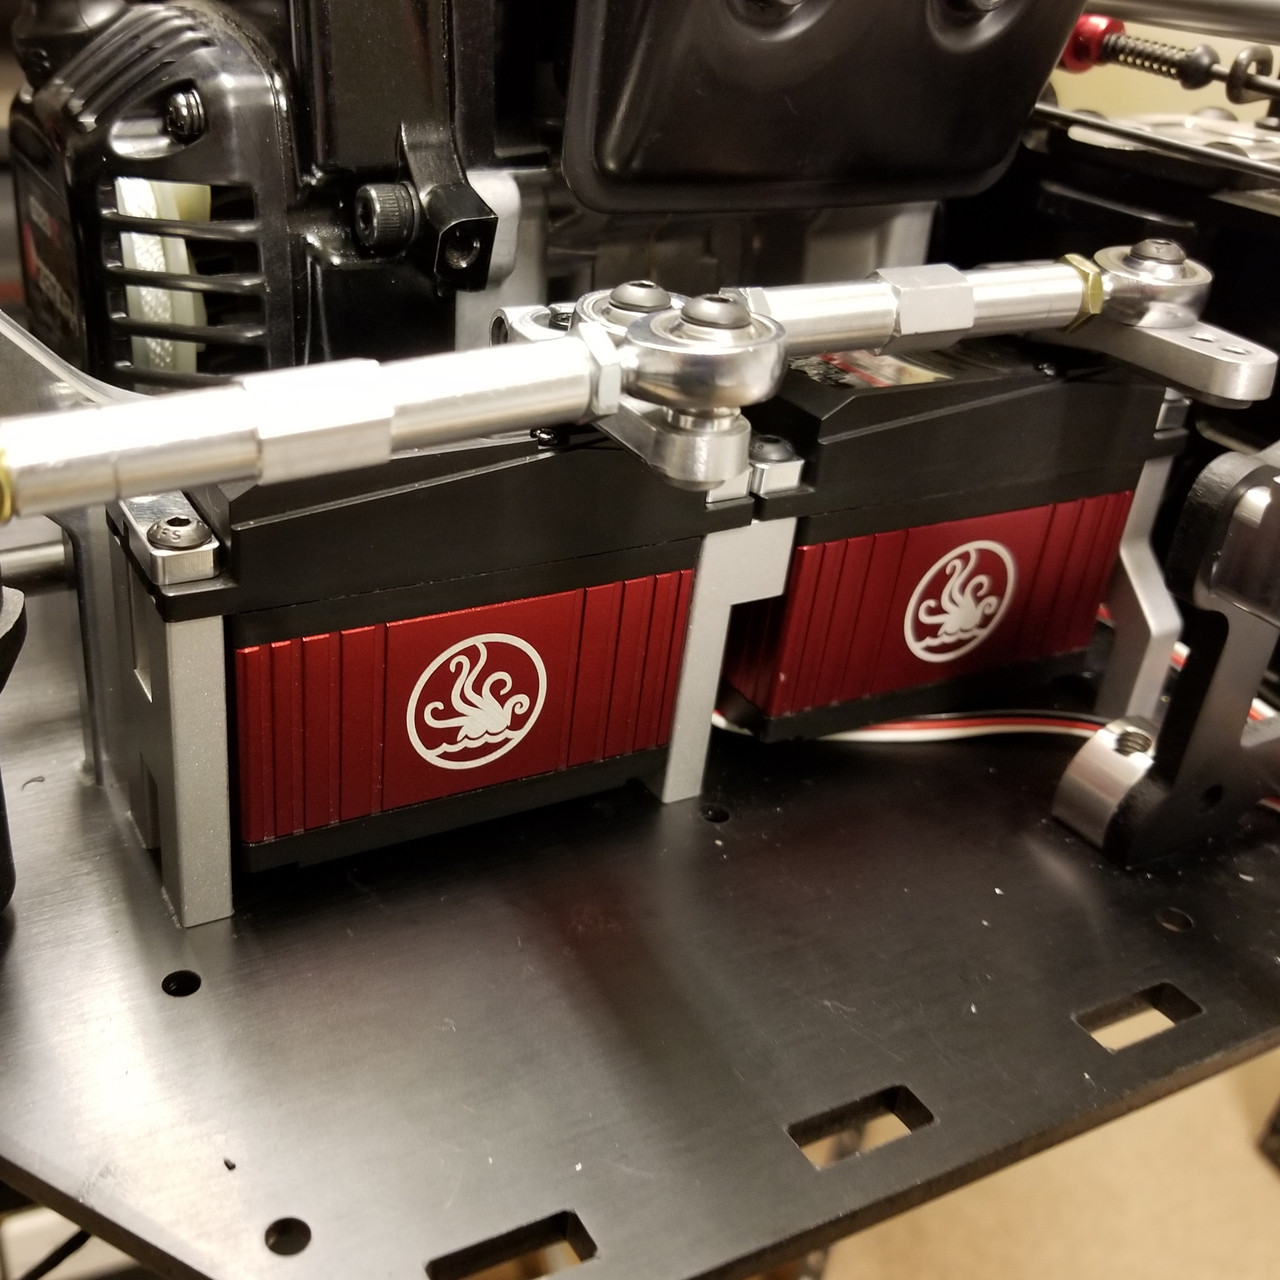 Shown here installed with a pair of Stock Kraken servos as well as a front link from IRP.